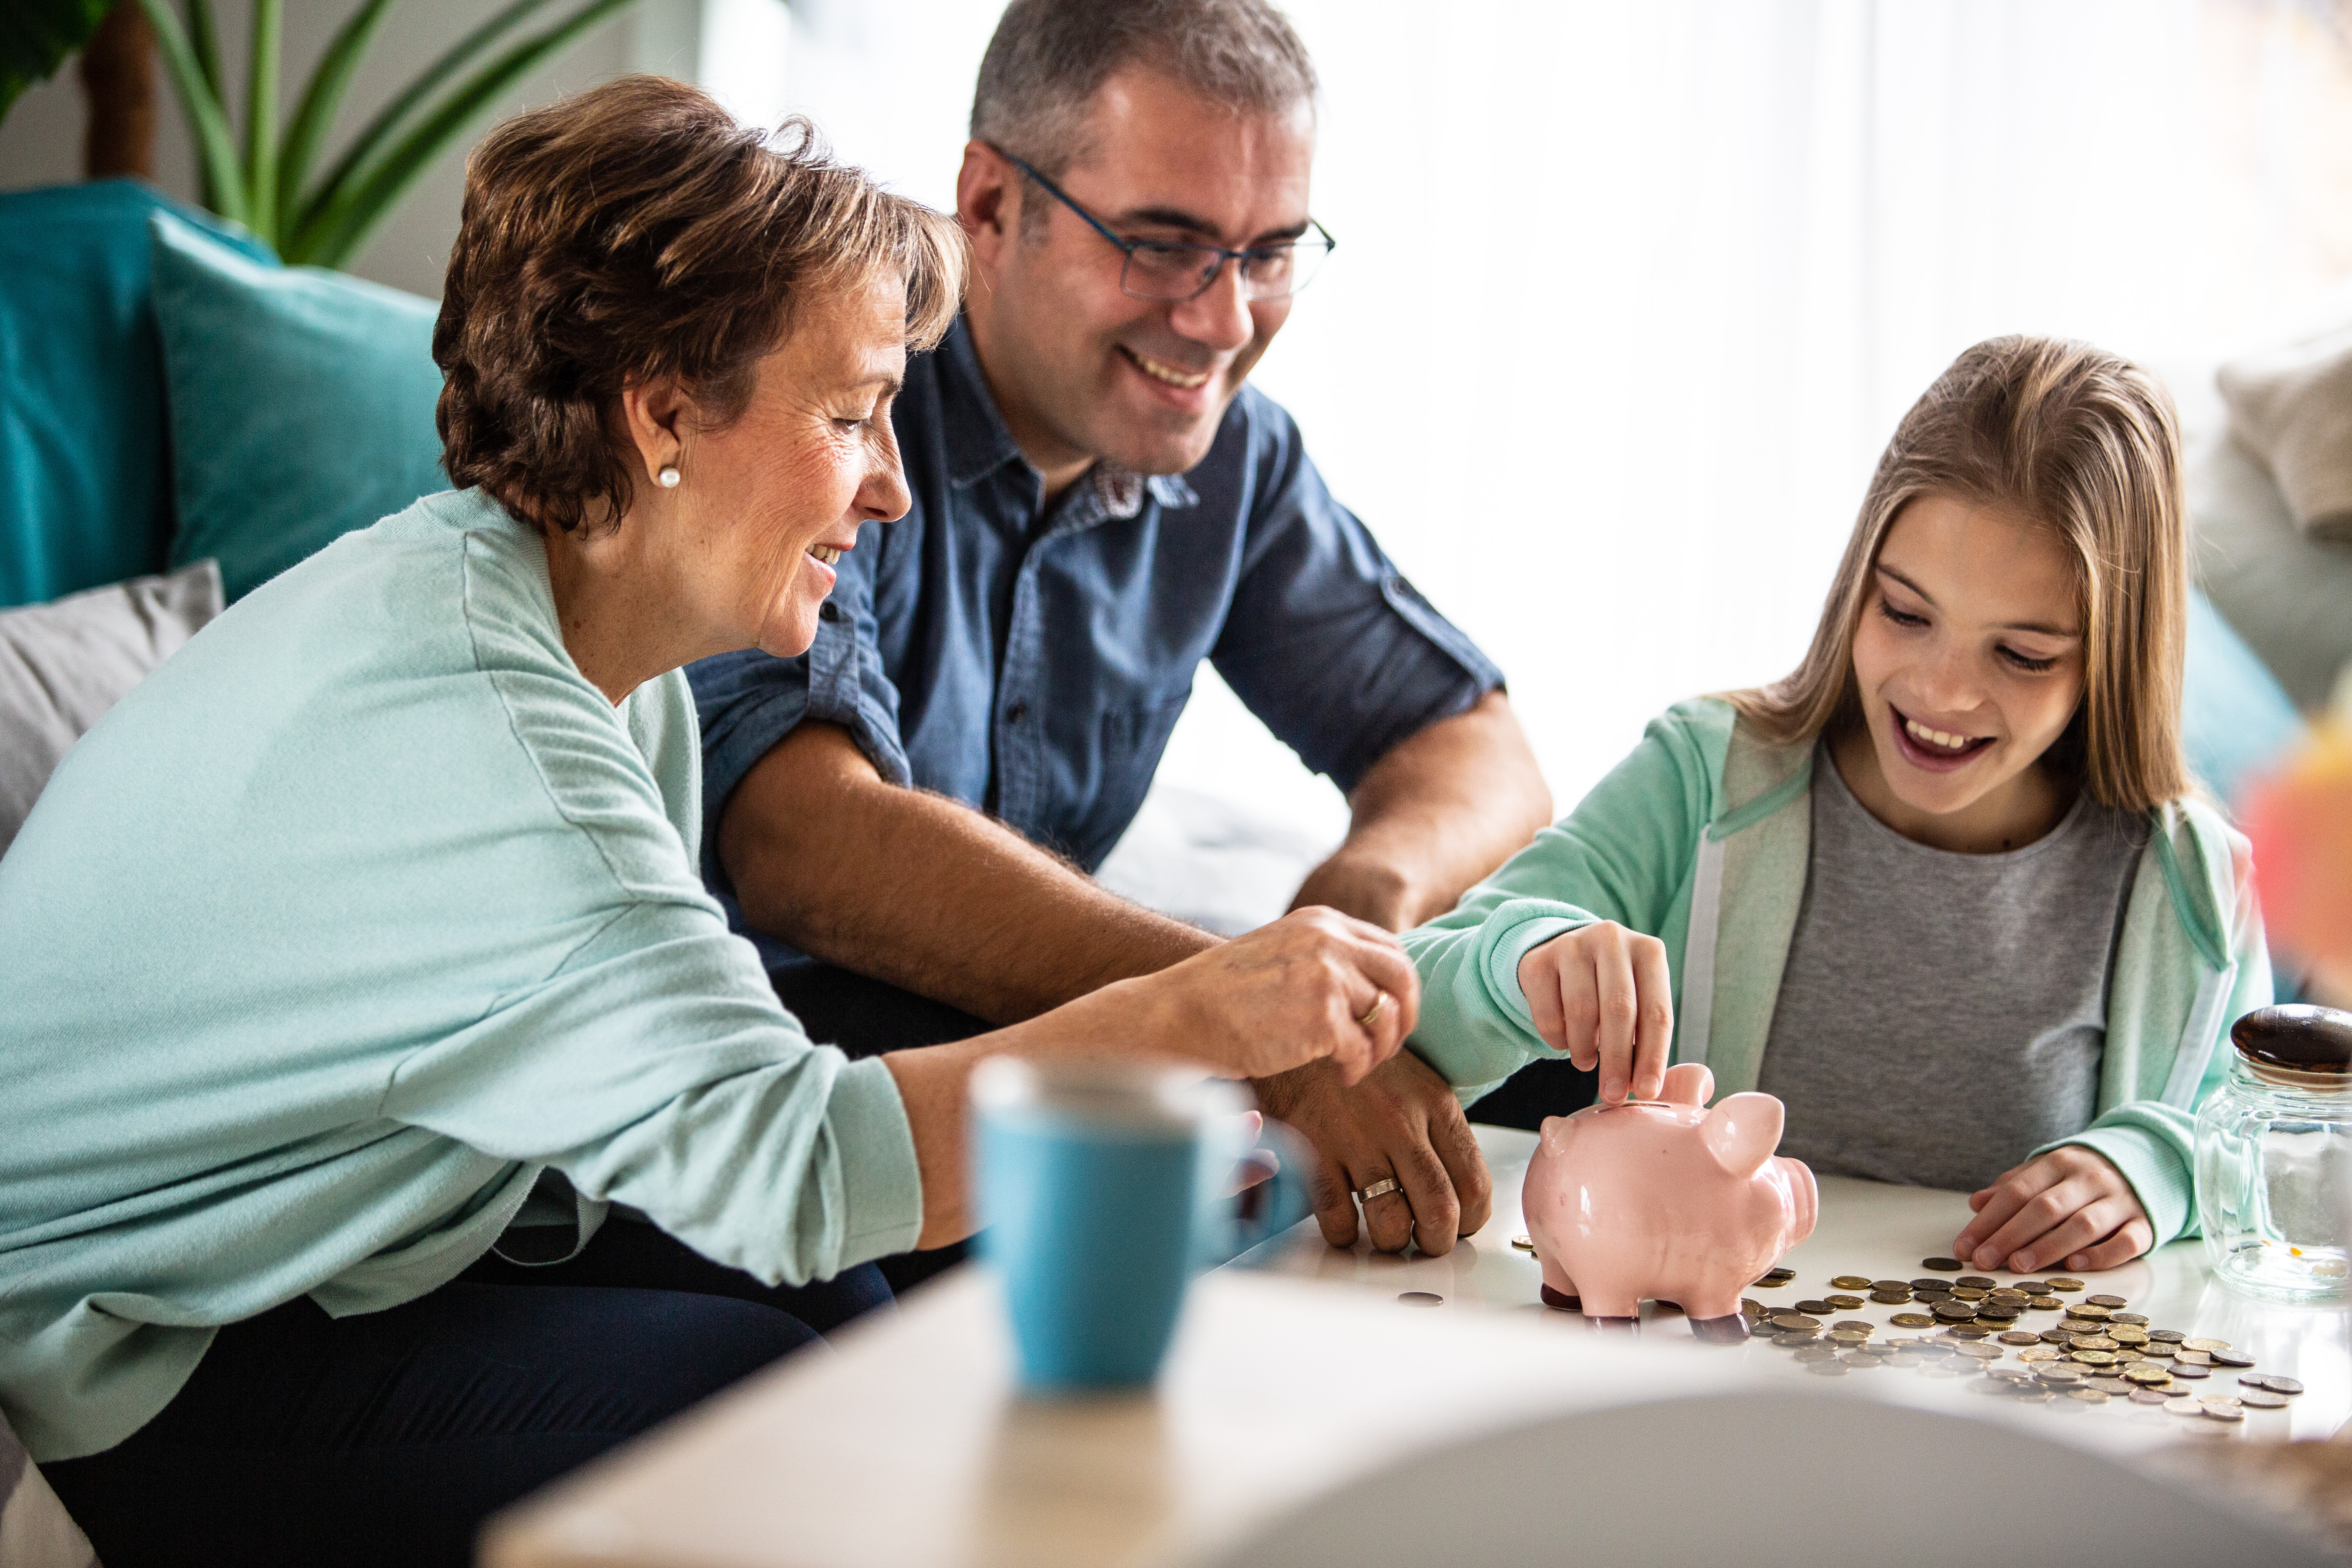 Gramma, Father and daughter all counting money with piggy bank on the table